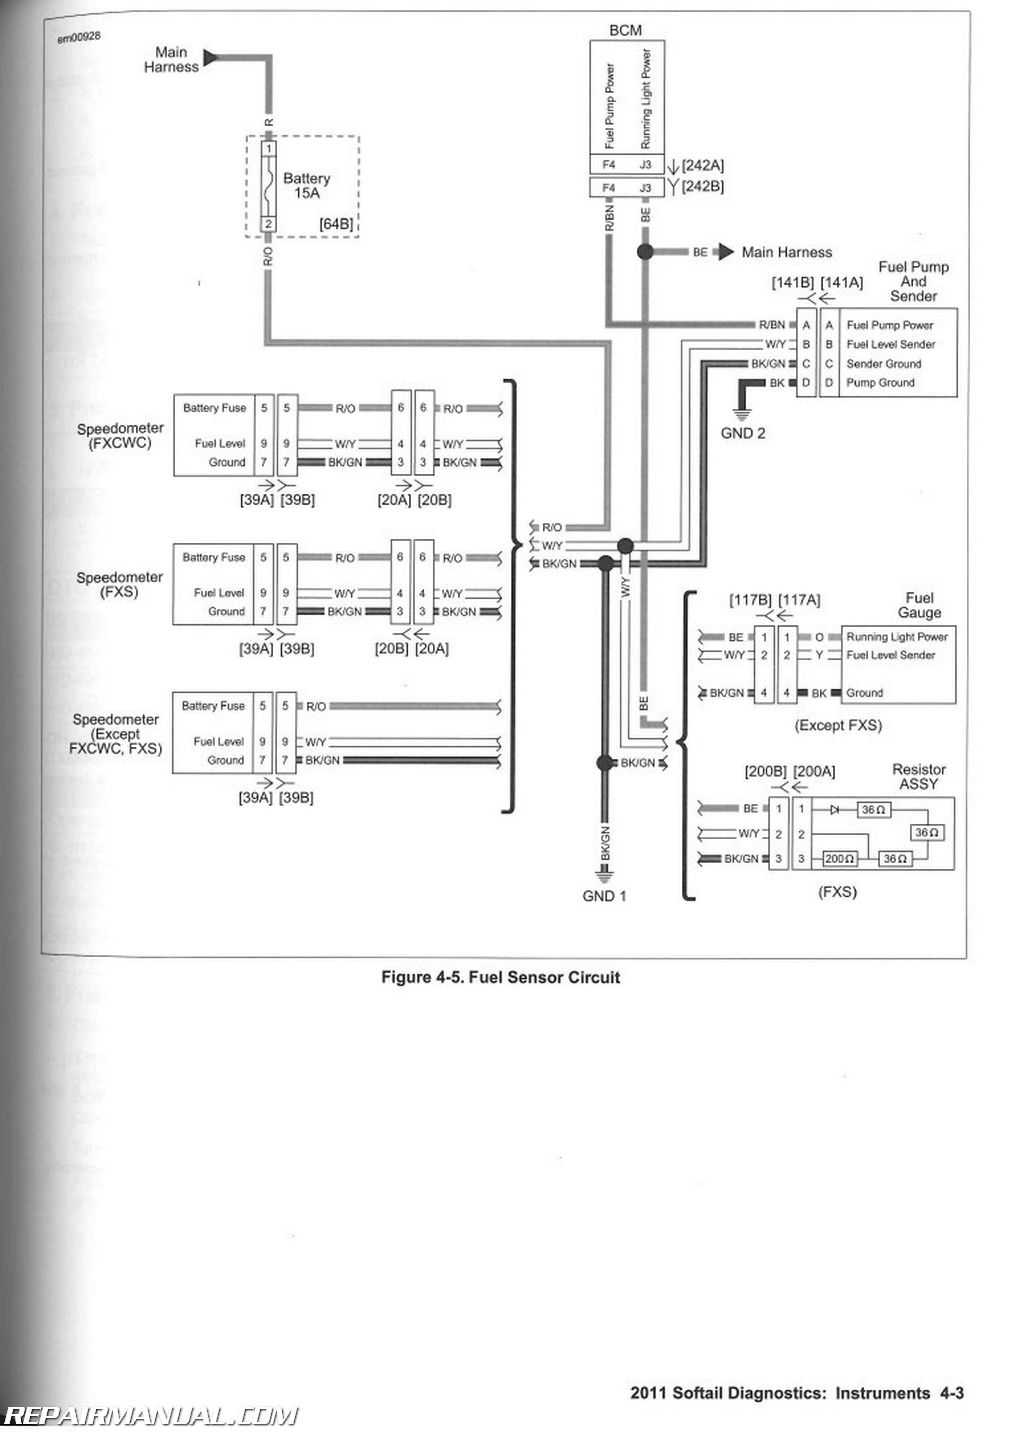 Harley 6 Pole Wiring Diagram 2011 Harley Davidson Softail Motorcycle Electrical